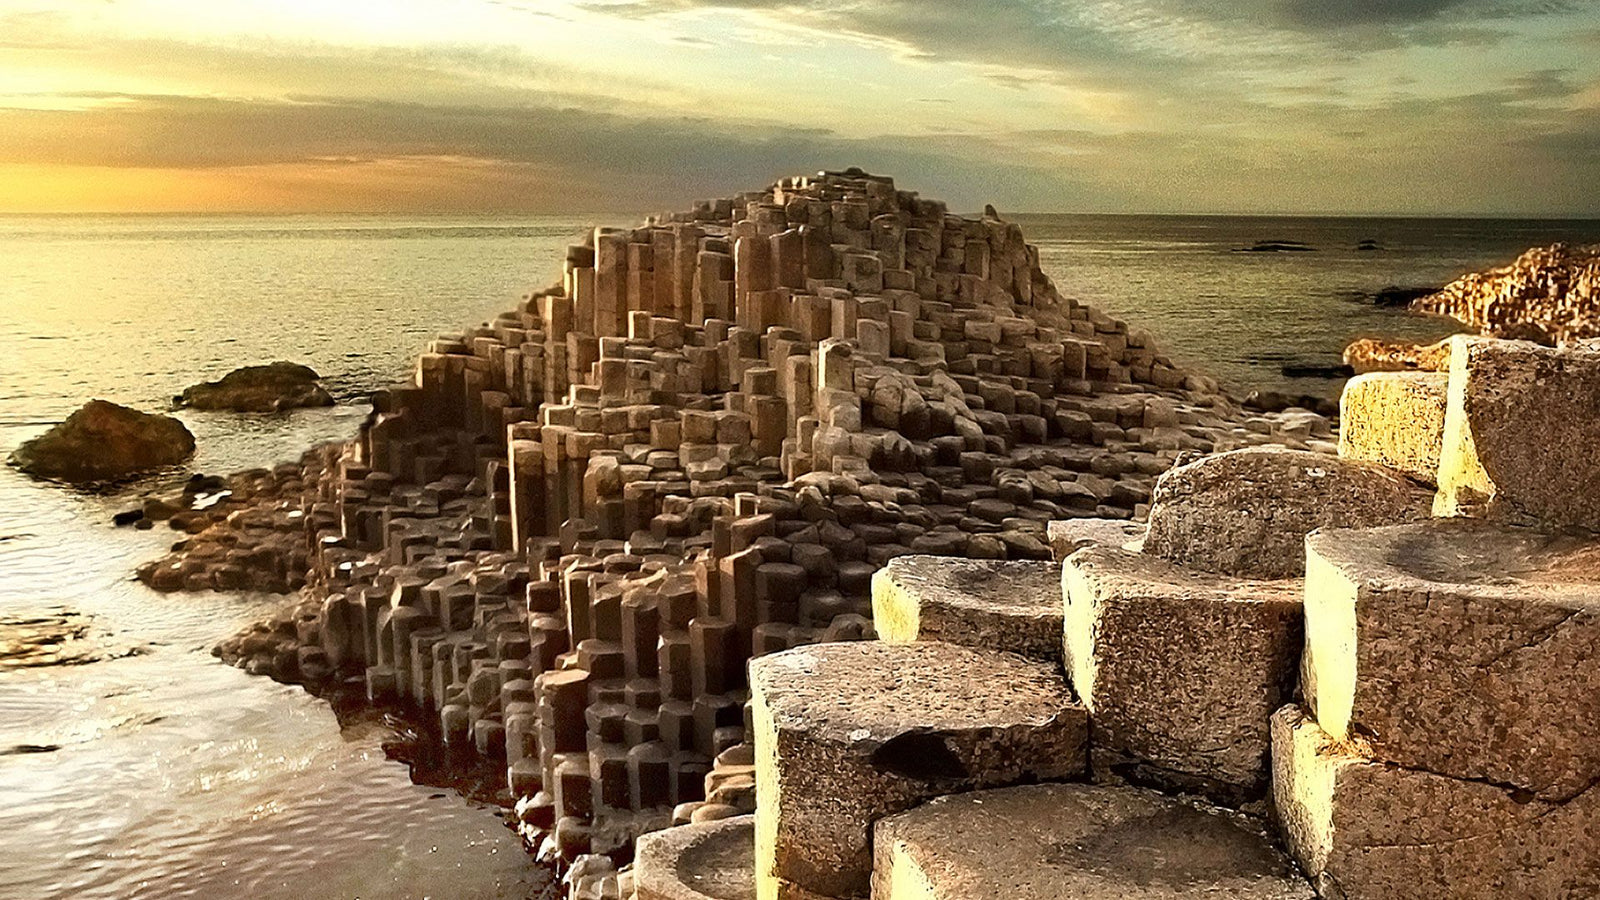 What is the story of the Giants Causeway?